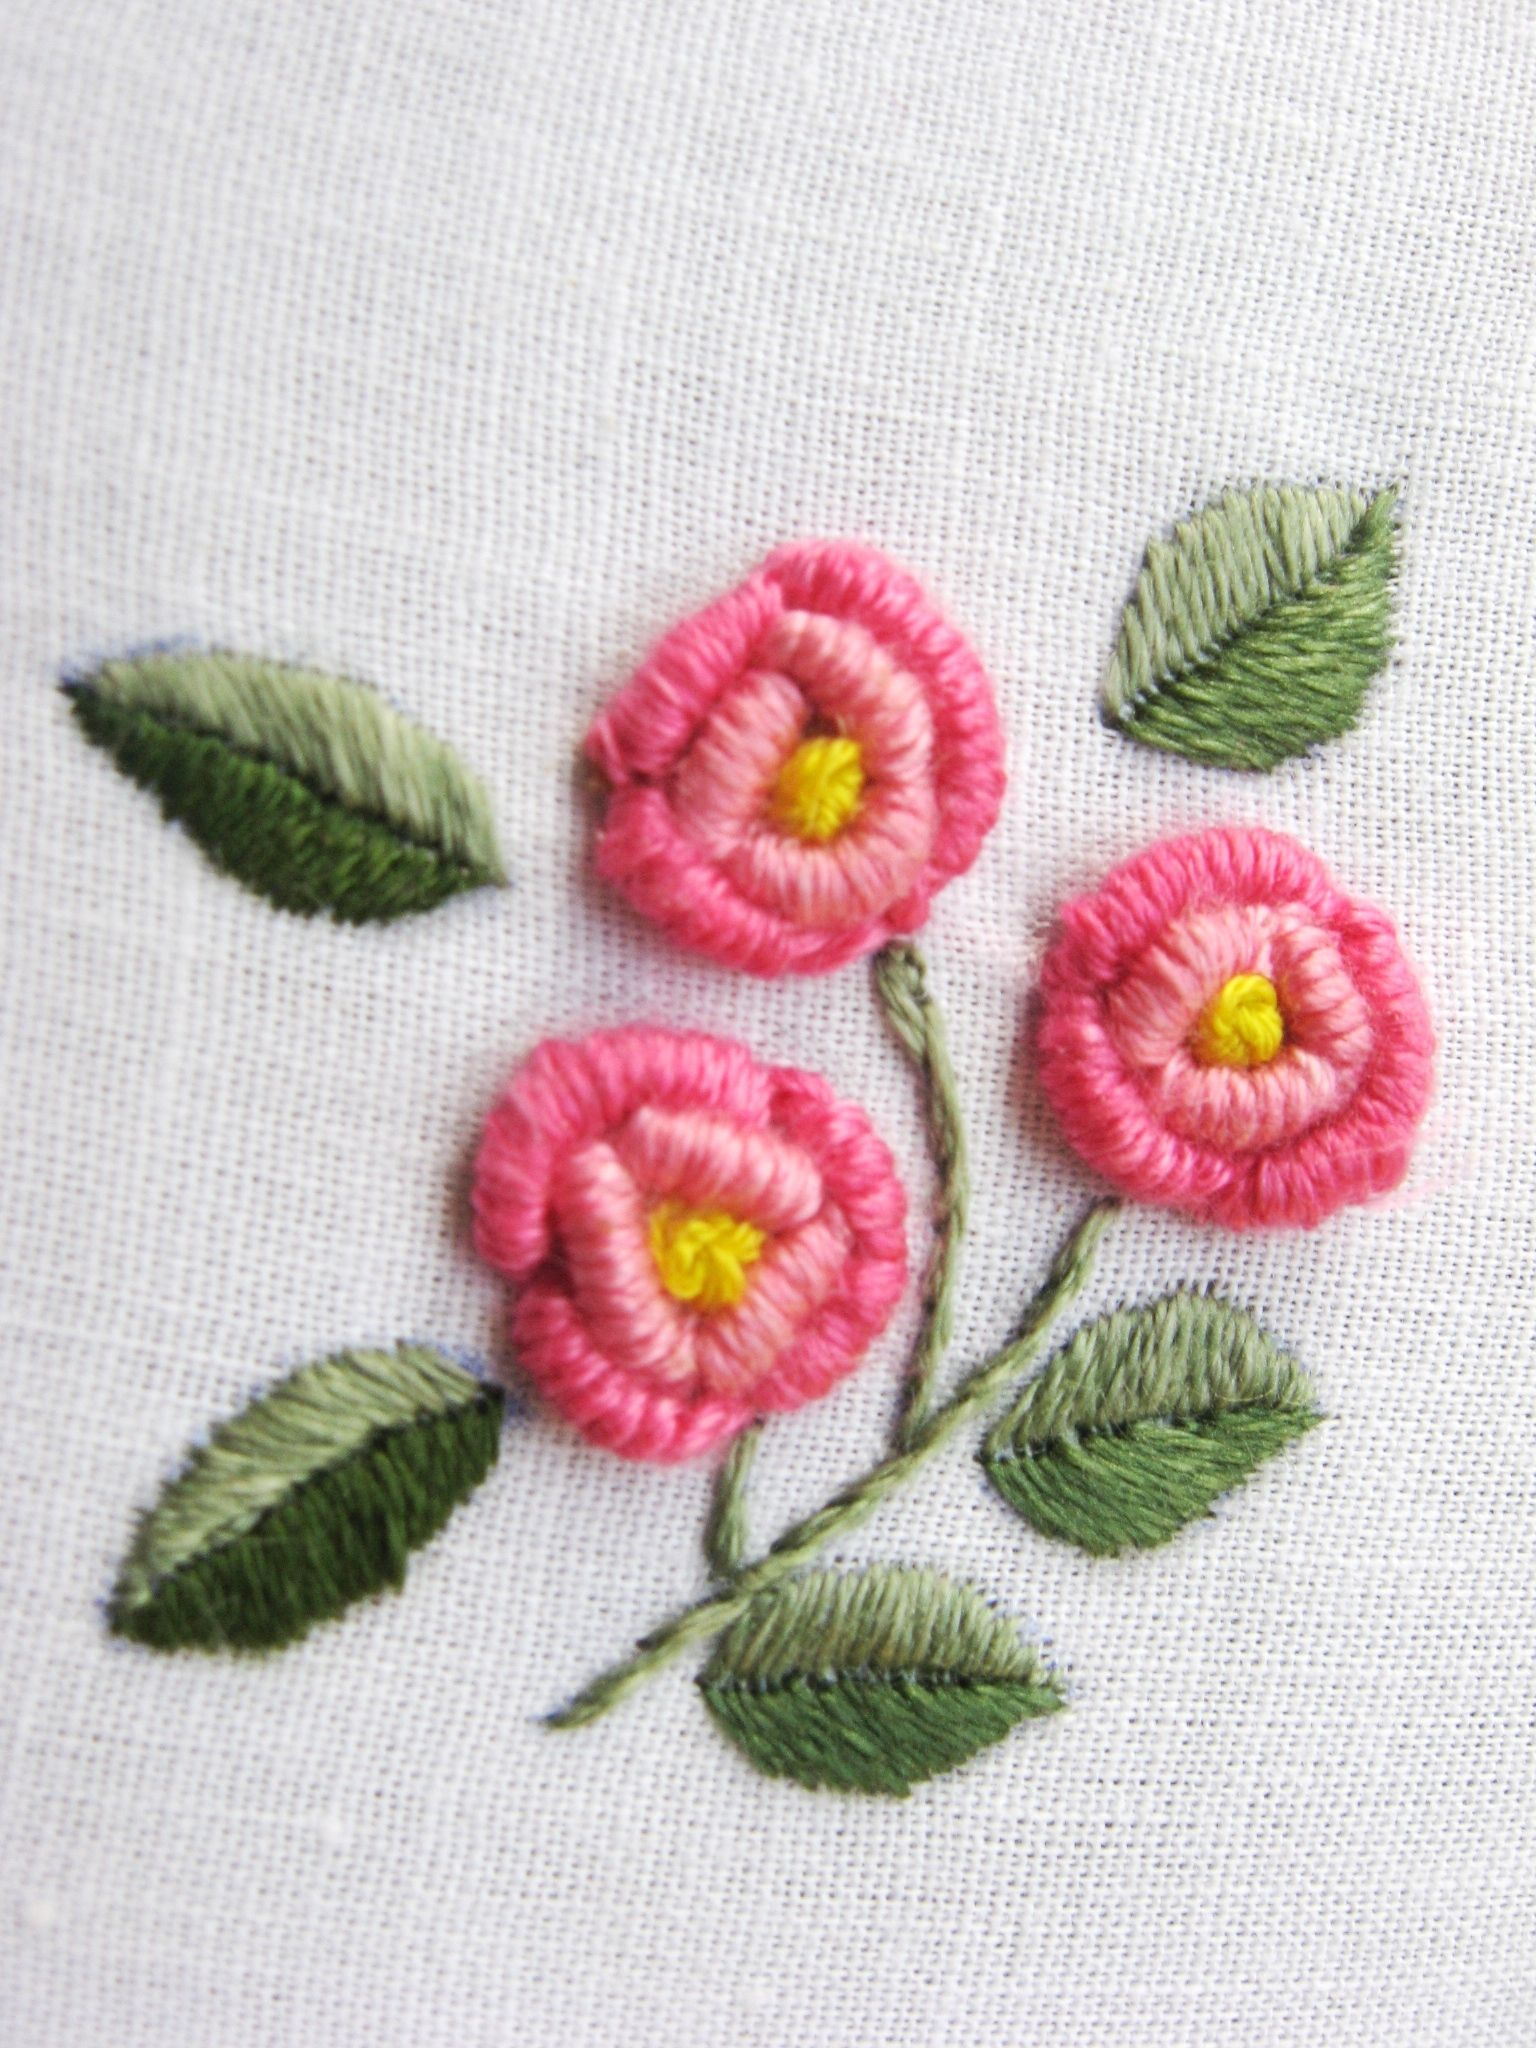 Embroidery flowers google search flower embroidery research